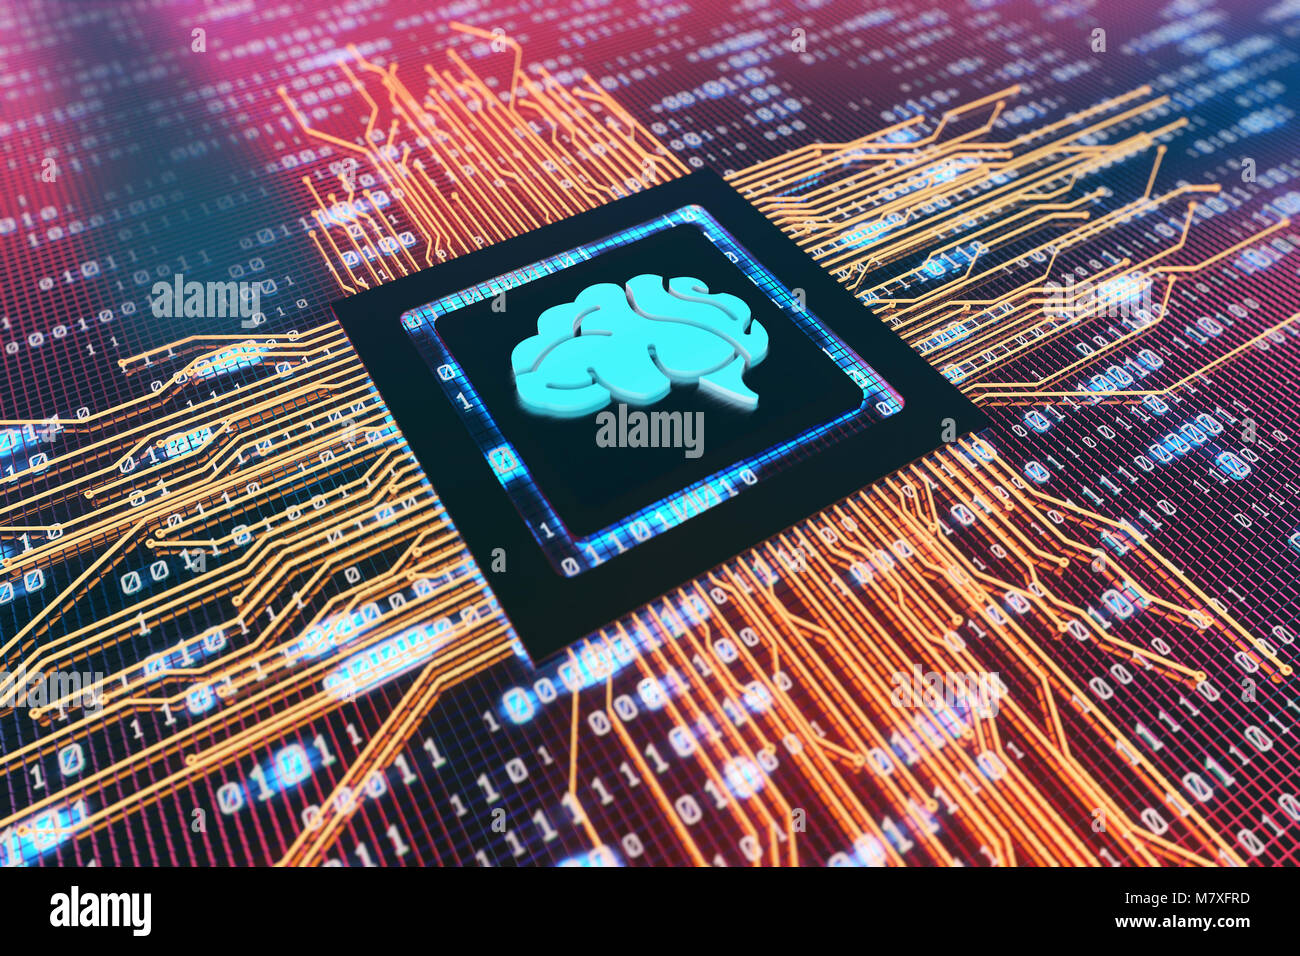 Electronic Technology, Circuit Boards and CPUs, Network Transfer Data, Technology Finance - Stock Image